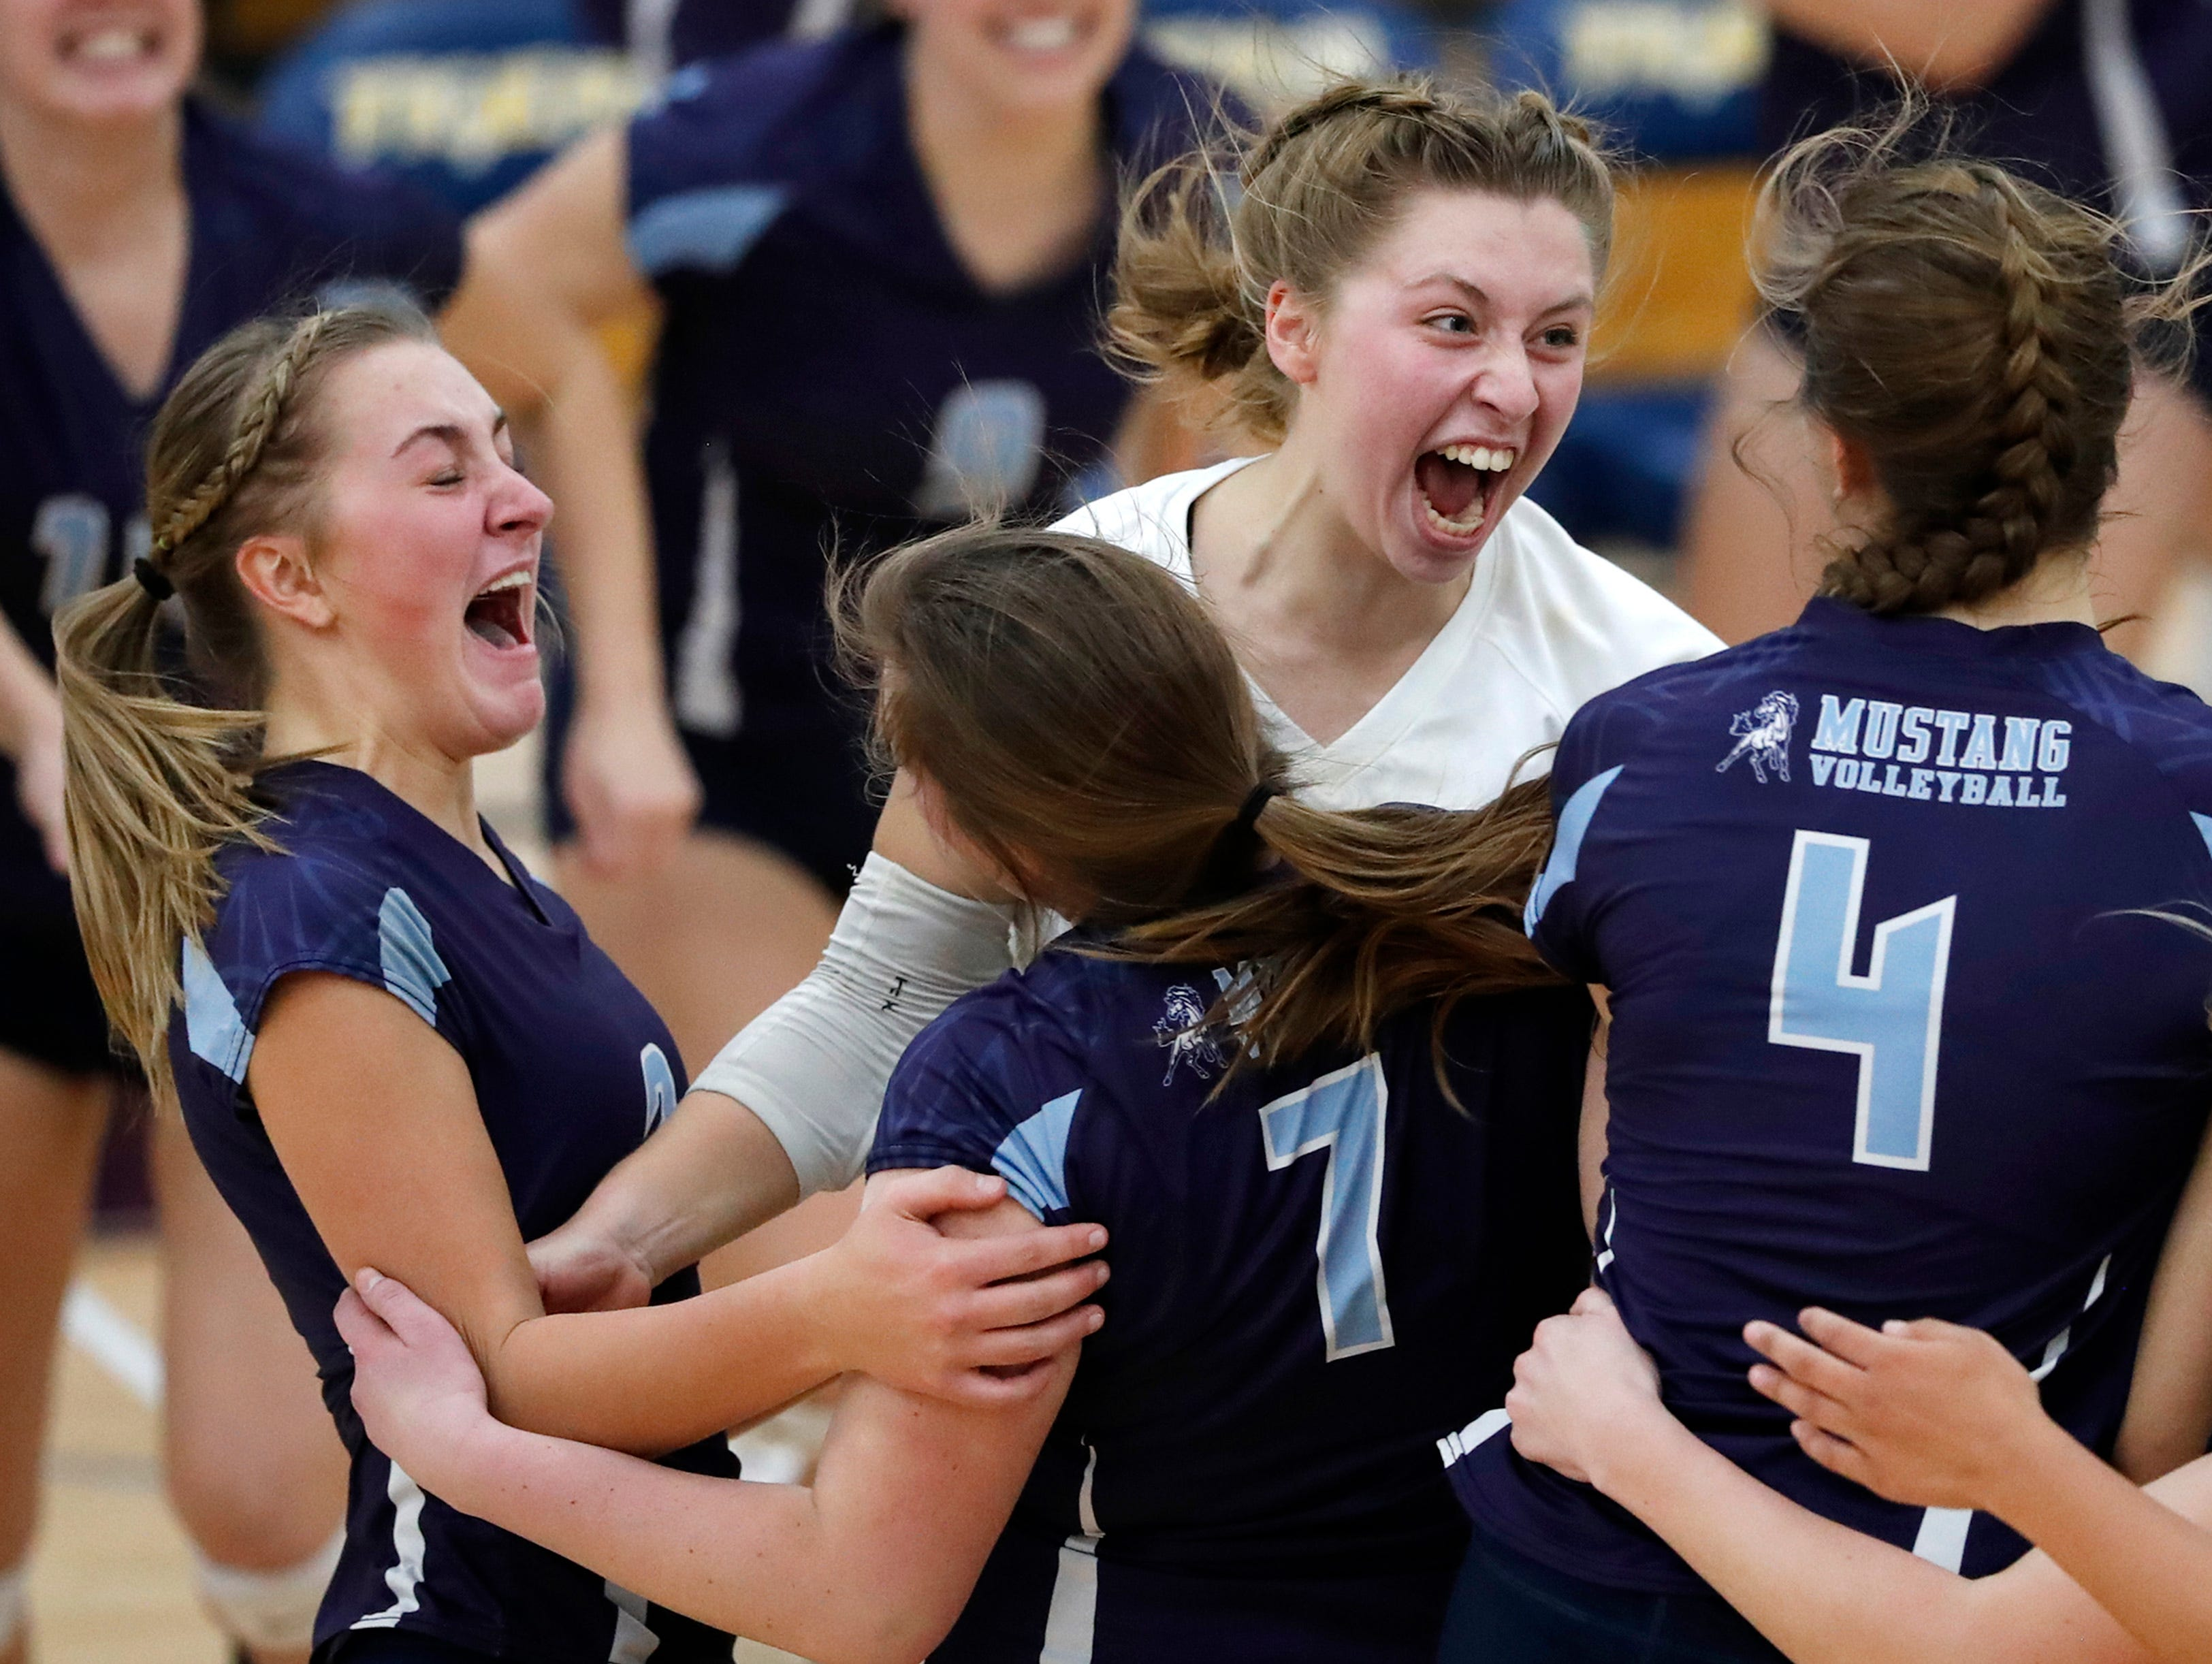 Little Chute High School's Gabi Roemer, Katherine Joten, Emma Ciske, and Hannah VandenBerg celebrate after defeating Xavier High School in the fifth set during their Division 2 semifinal match Thursday, Oct. 25, 2018, in Chilton, Wis.